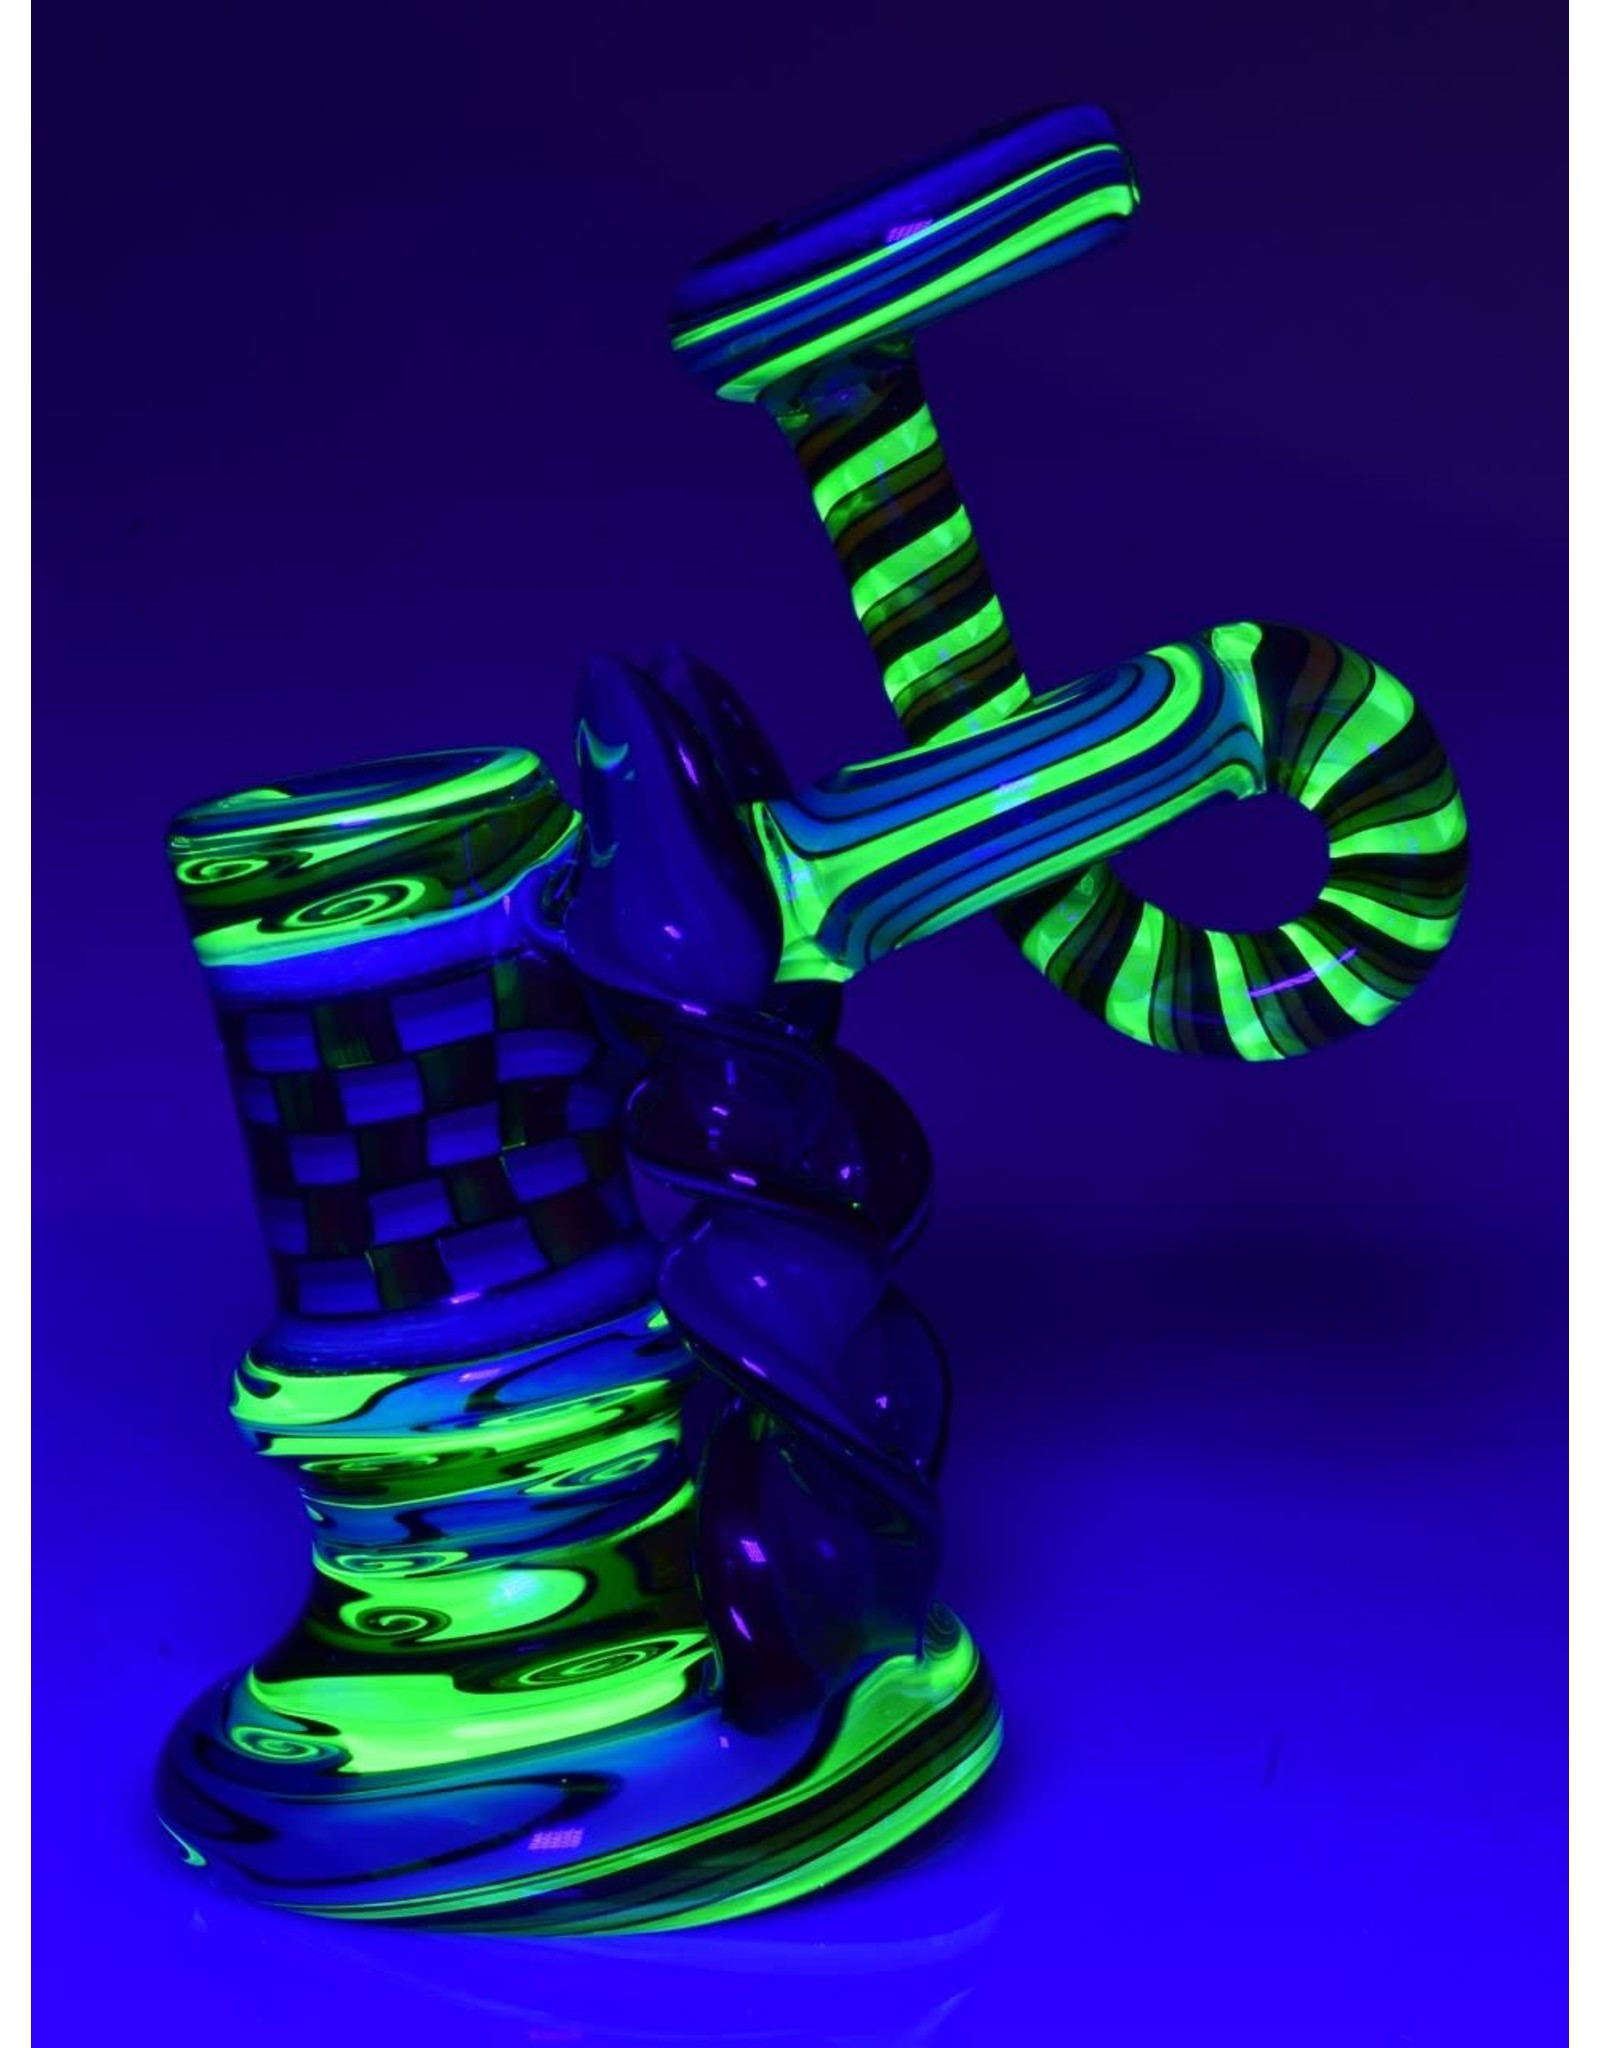 Jeff Green Penetrating Donut Worked Bubbler With 14mm Recessed Joint